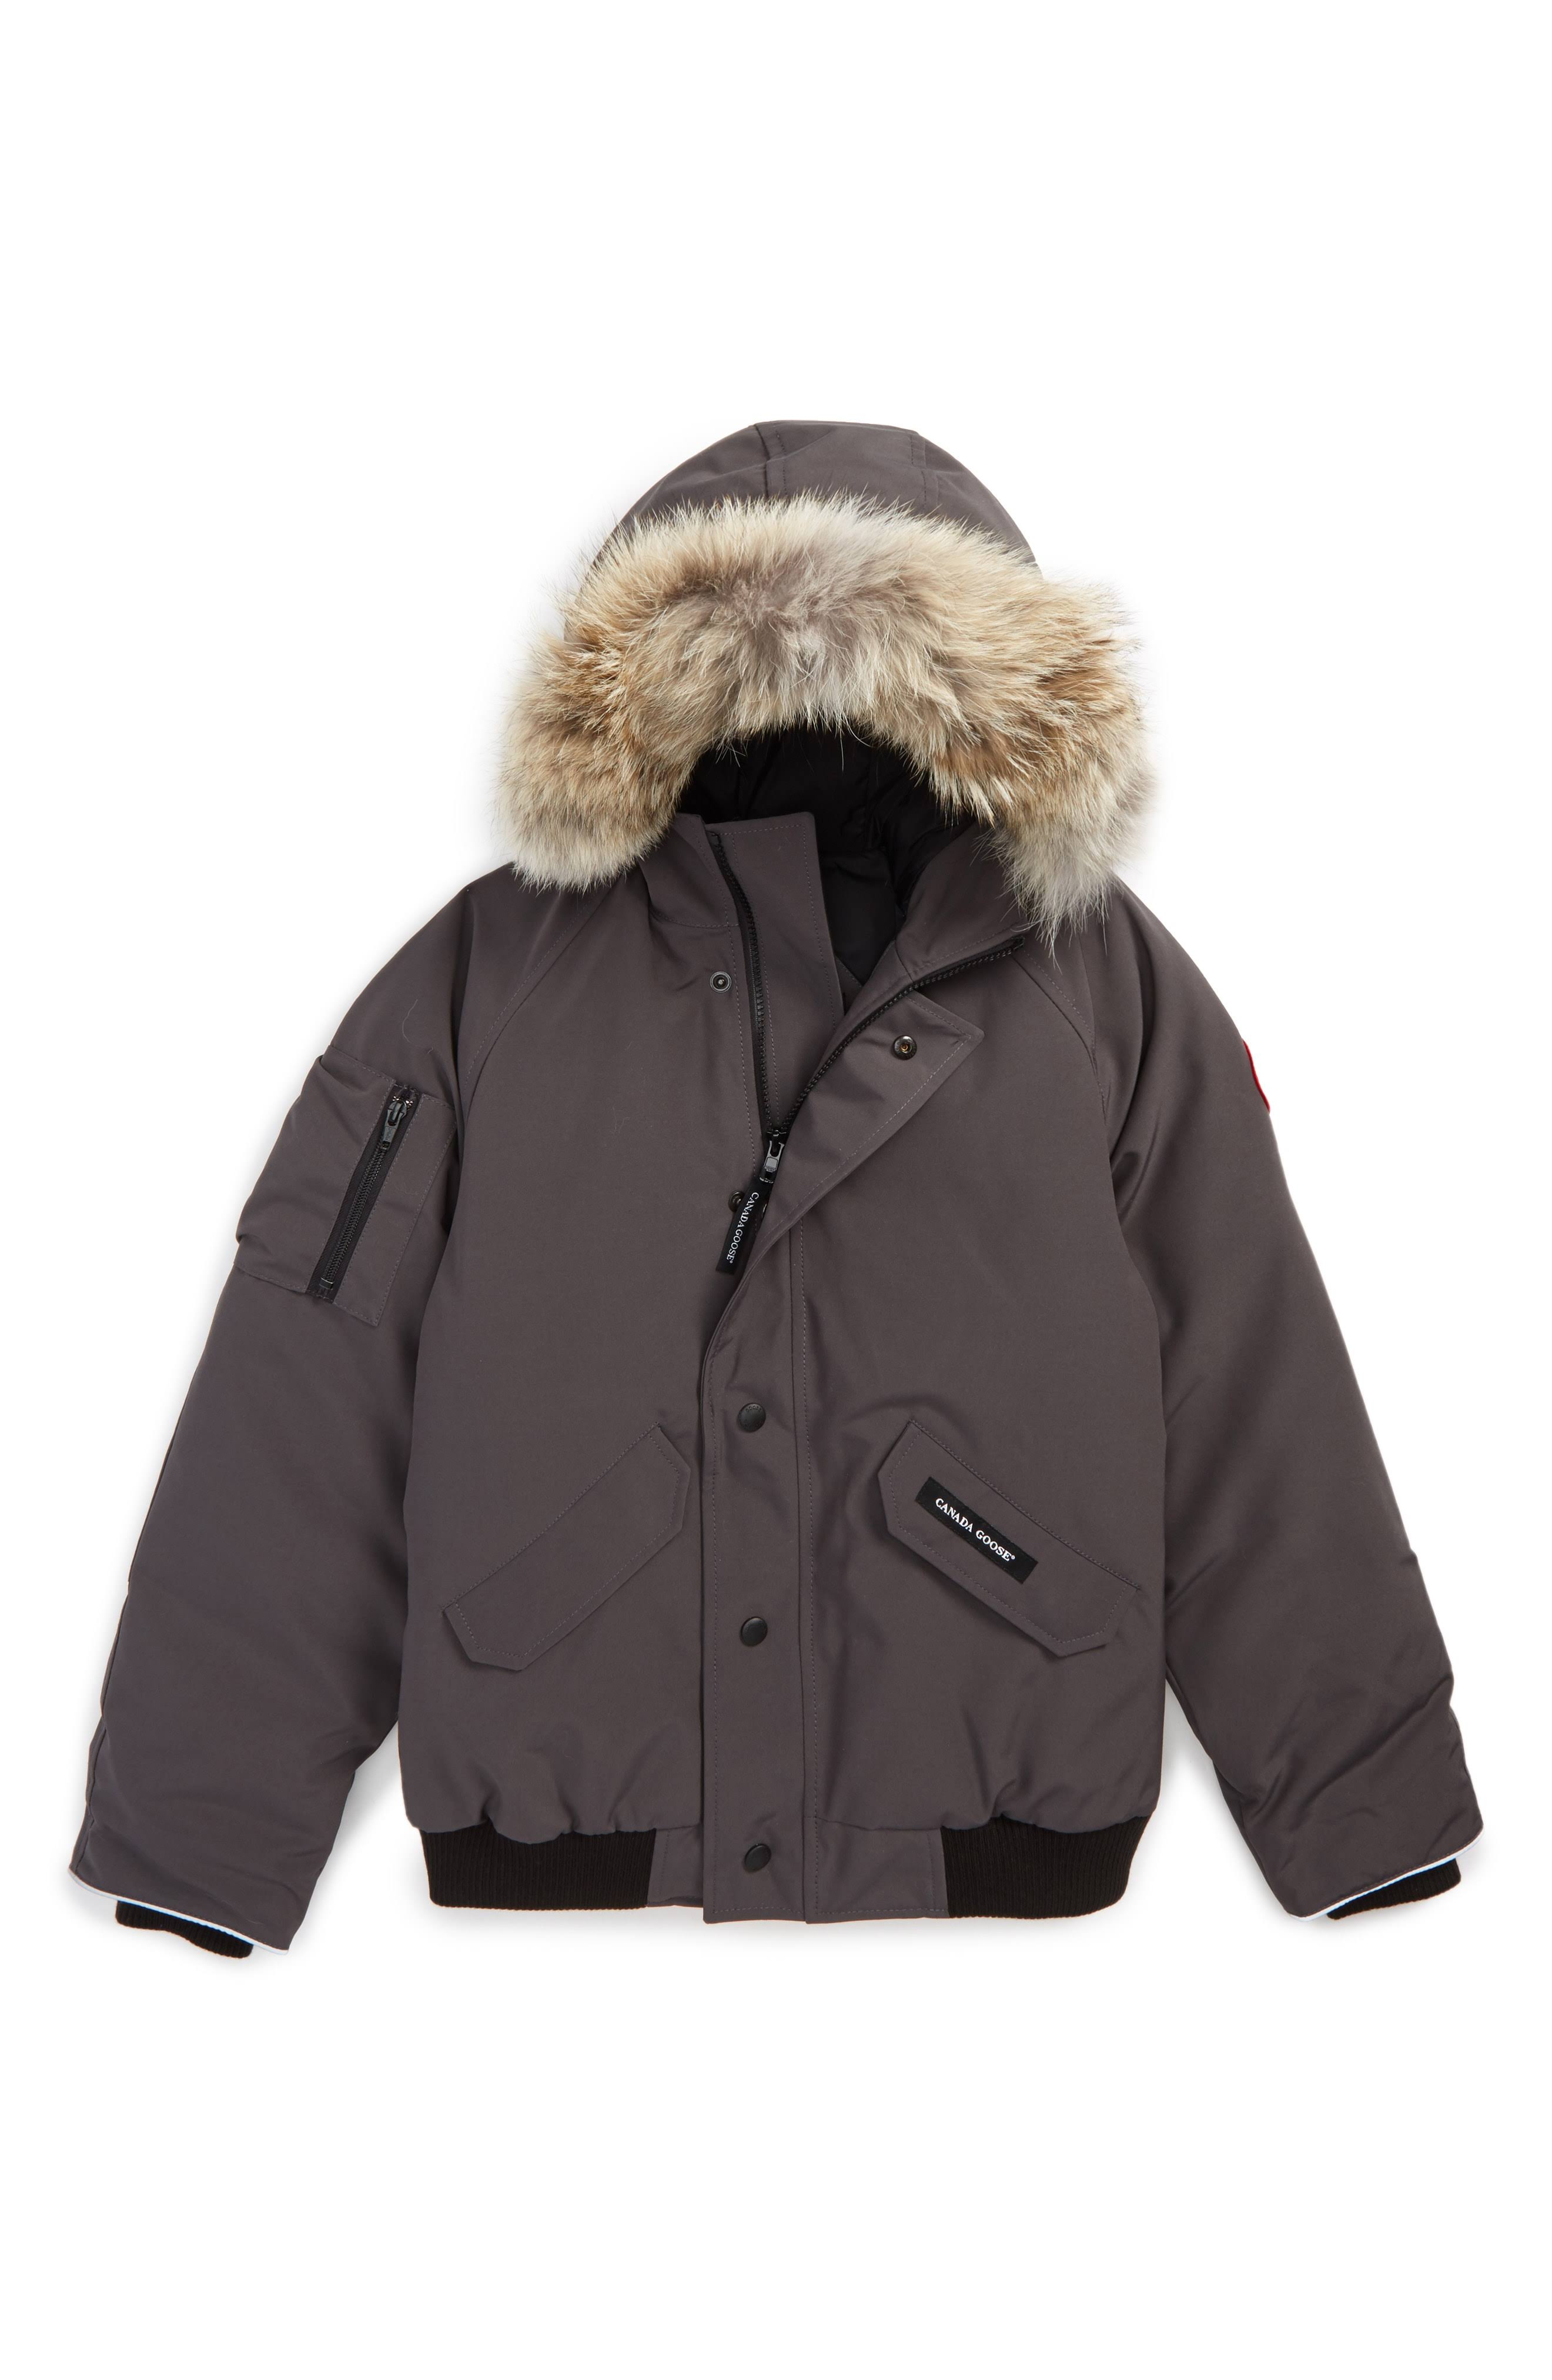 Goose Rundle Graphite Graphite Canadá S Bomber npYdUwfq